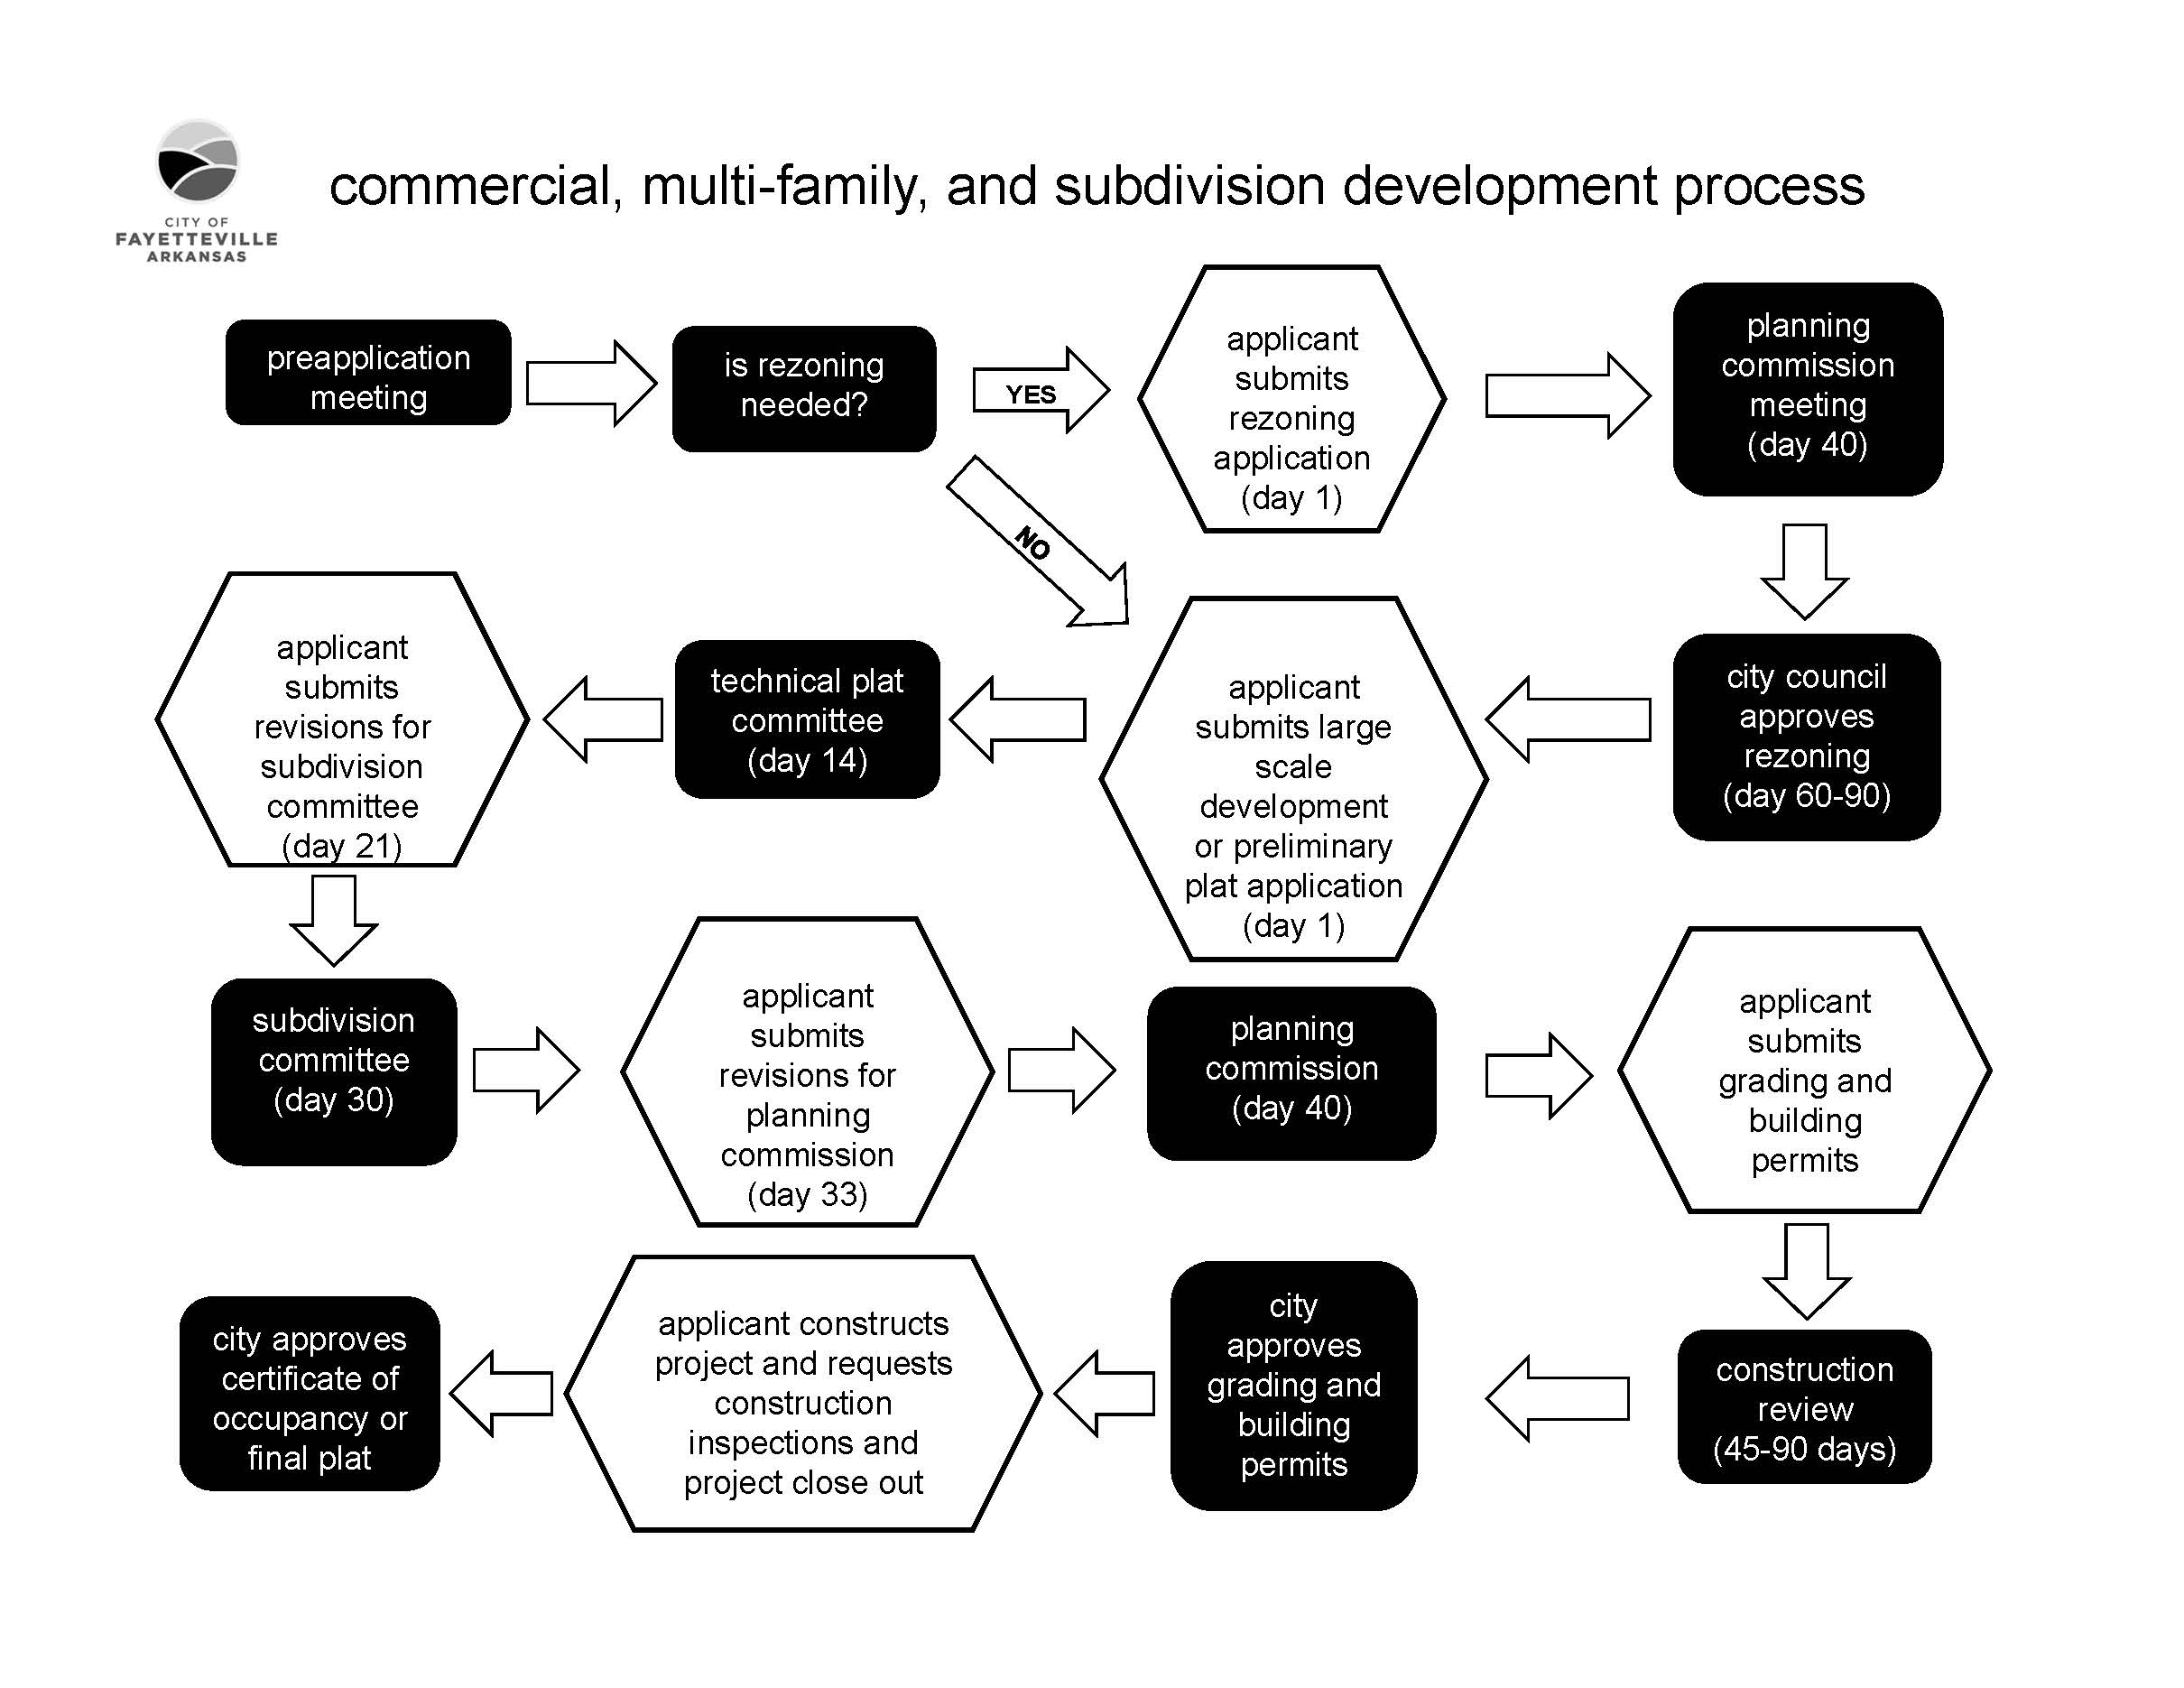 DevelopmentFlowChart